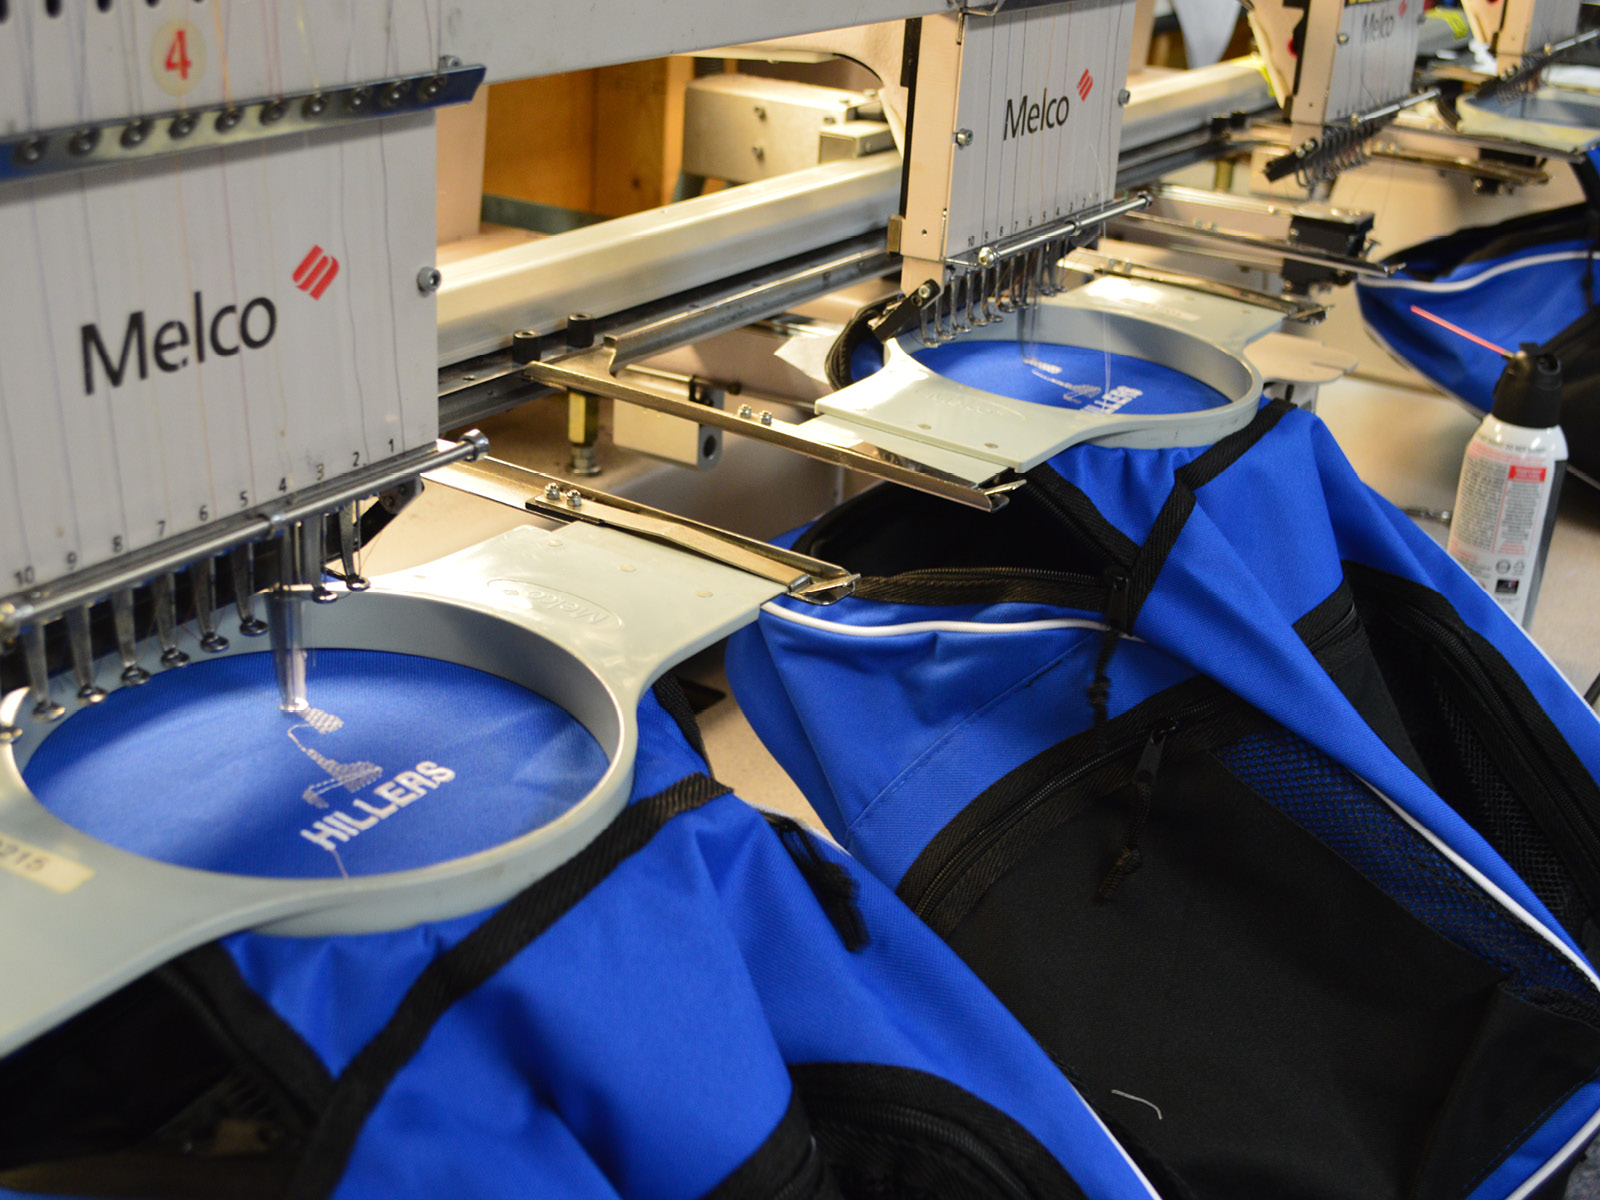 EMBROIDERY - Let us transform your logo or design into custom embroidery and add that professional touch you've always wanted for your apparel and gear. Hats, polos, half-zips, jackets and bags are just a few of our most popular embroidery items we offer to show off your team, company or event with style!